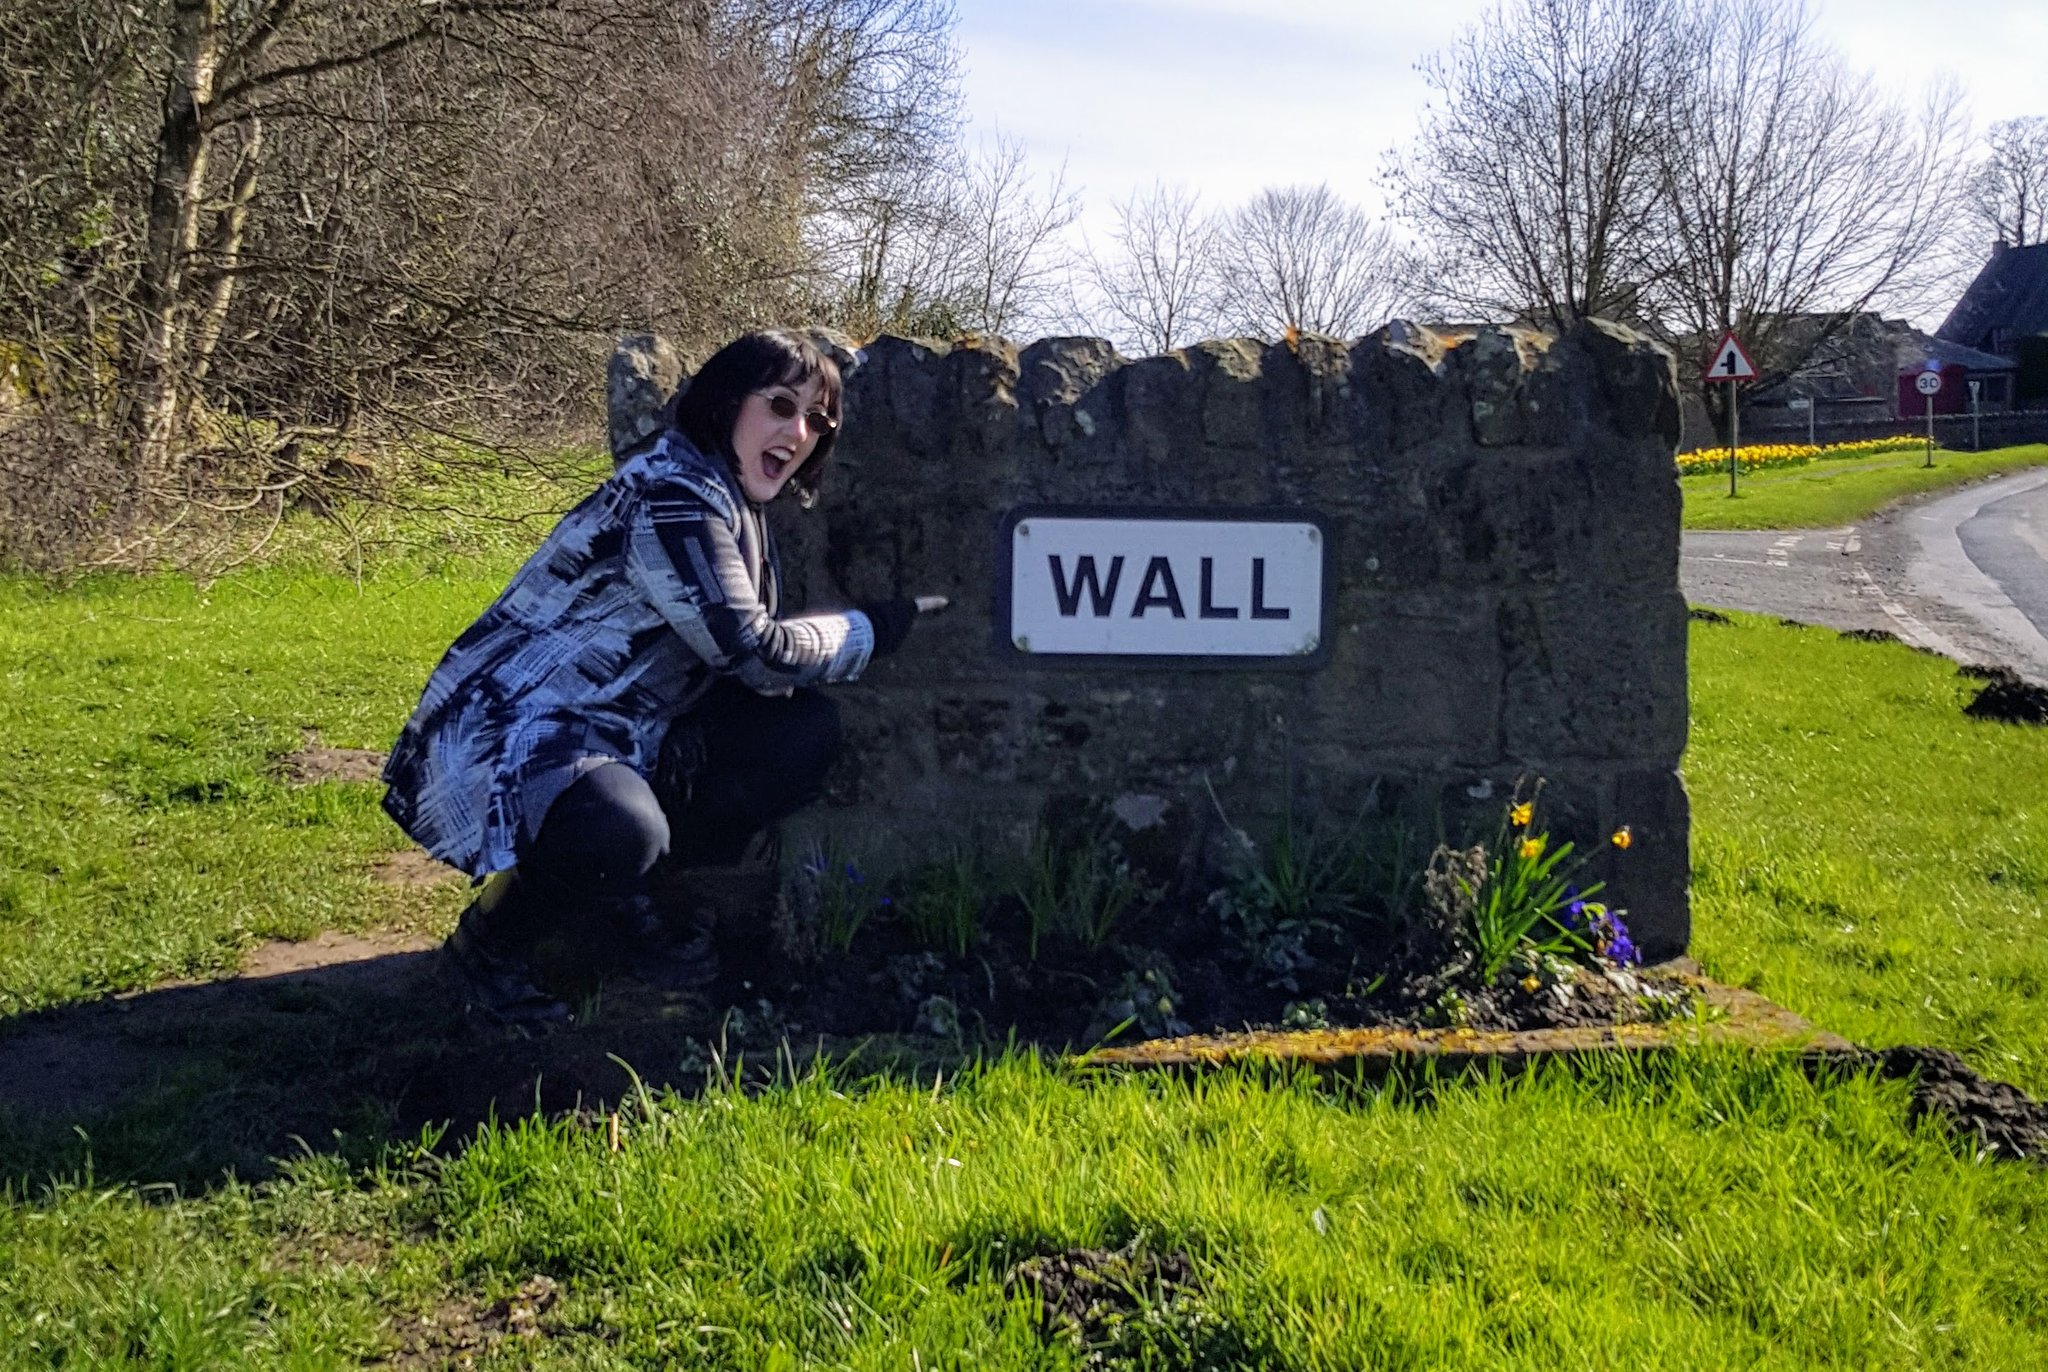 An image of Icy posing next to the village sign for Wall in Northumberland.